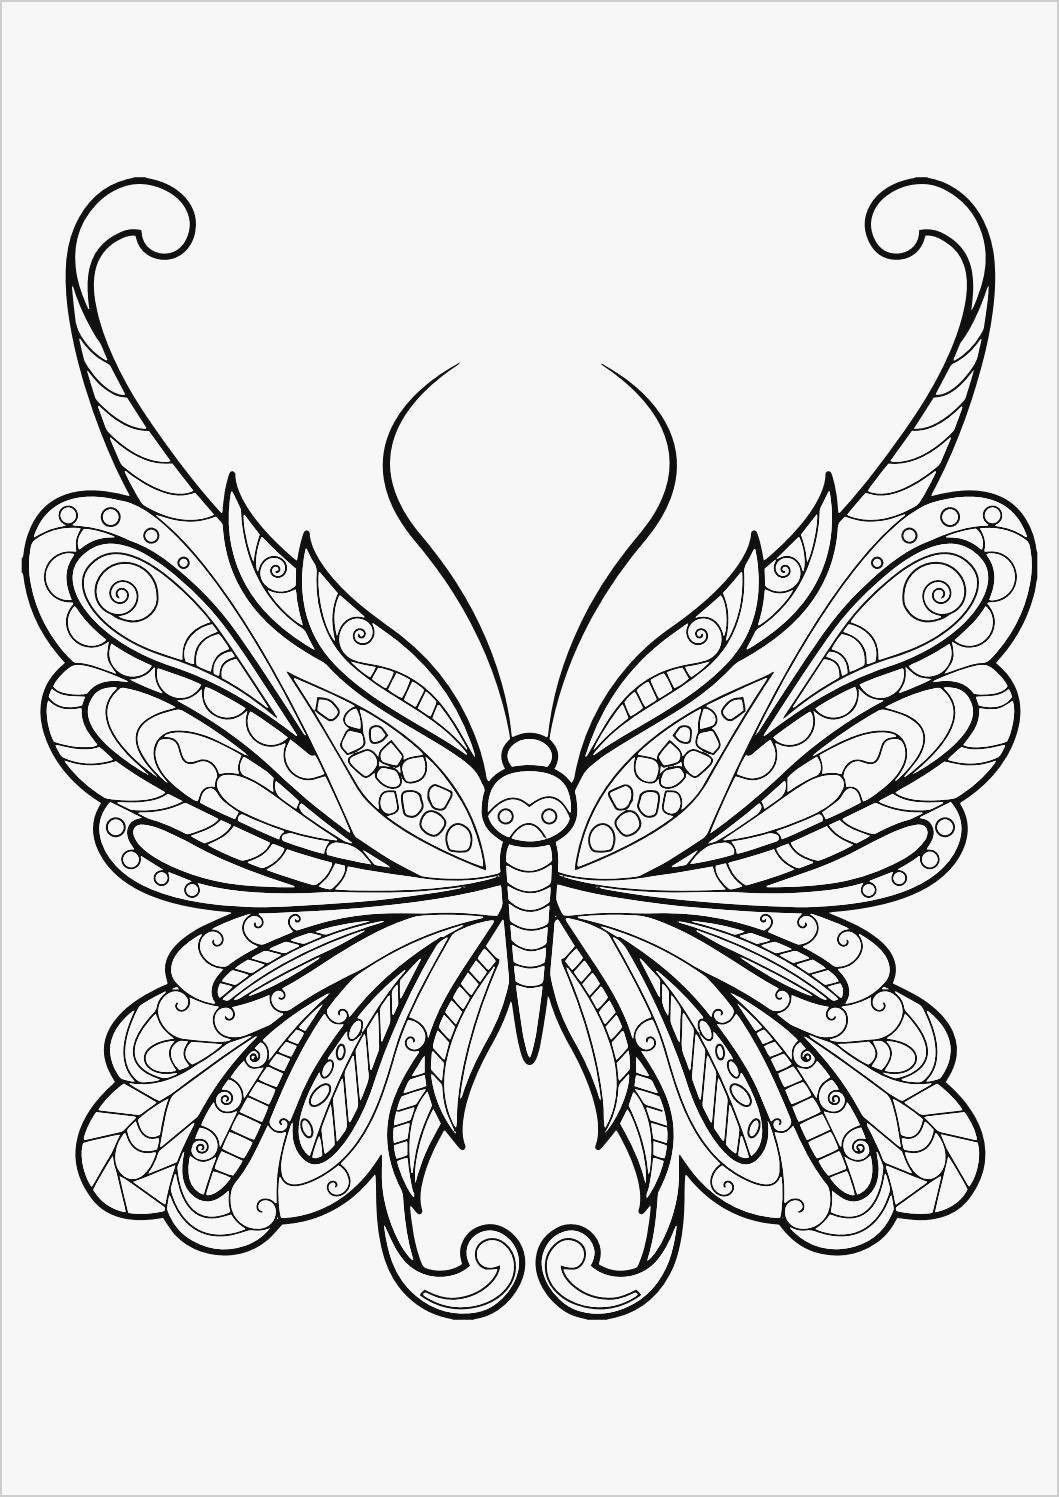 10 butterfly cocoon coloring pages butterfly coloring for adults butterfly coloring pages games butterfly coloring pages that you can print